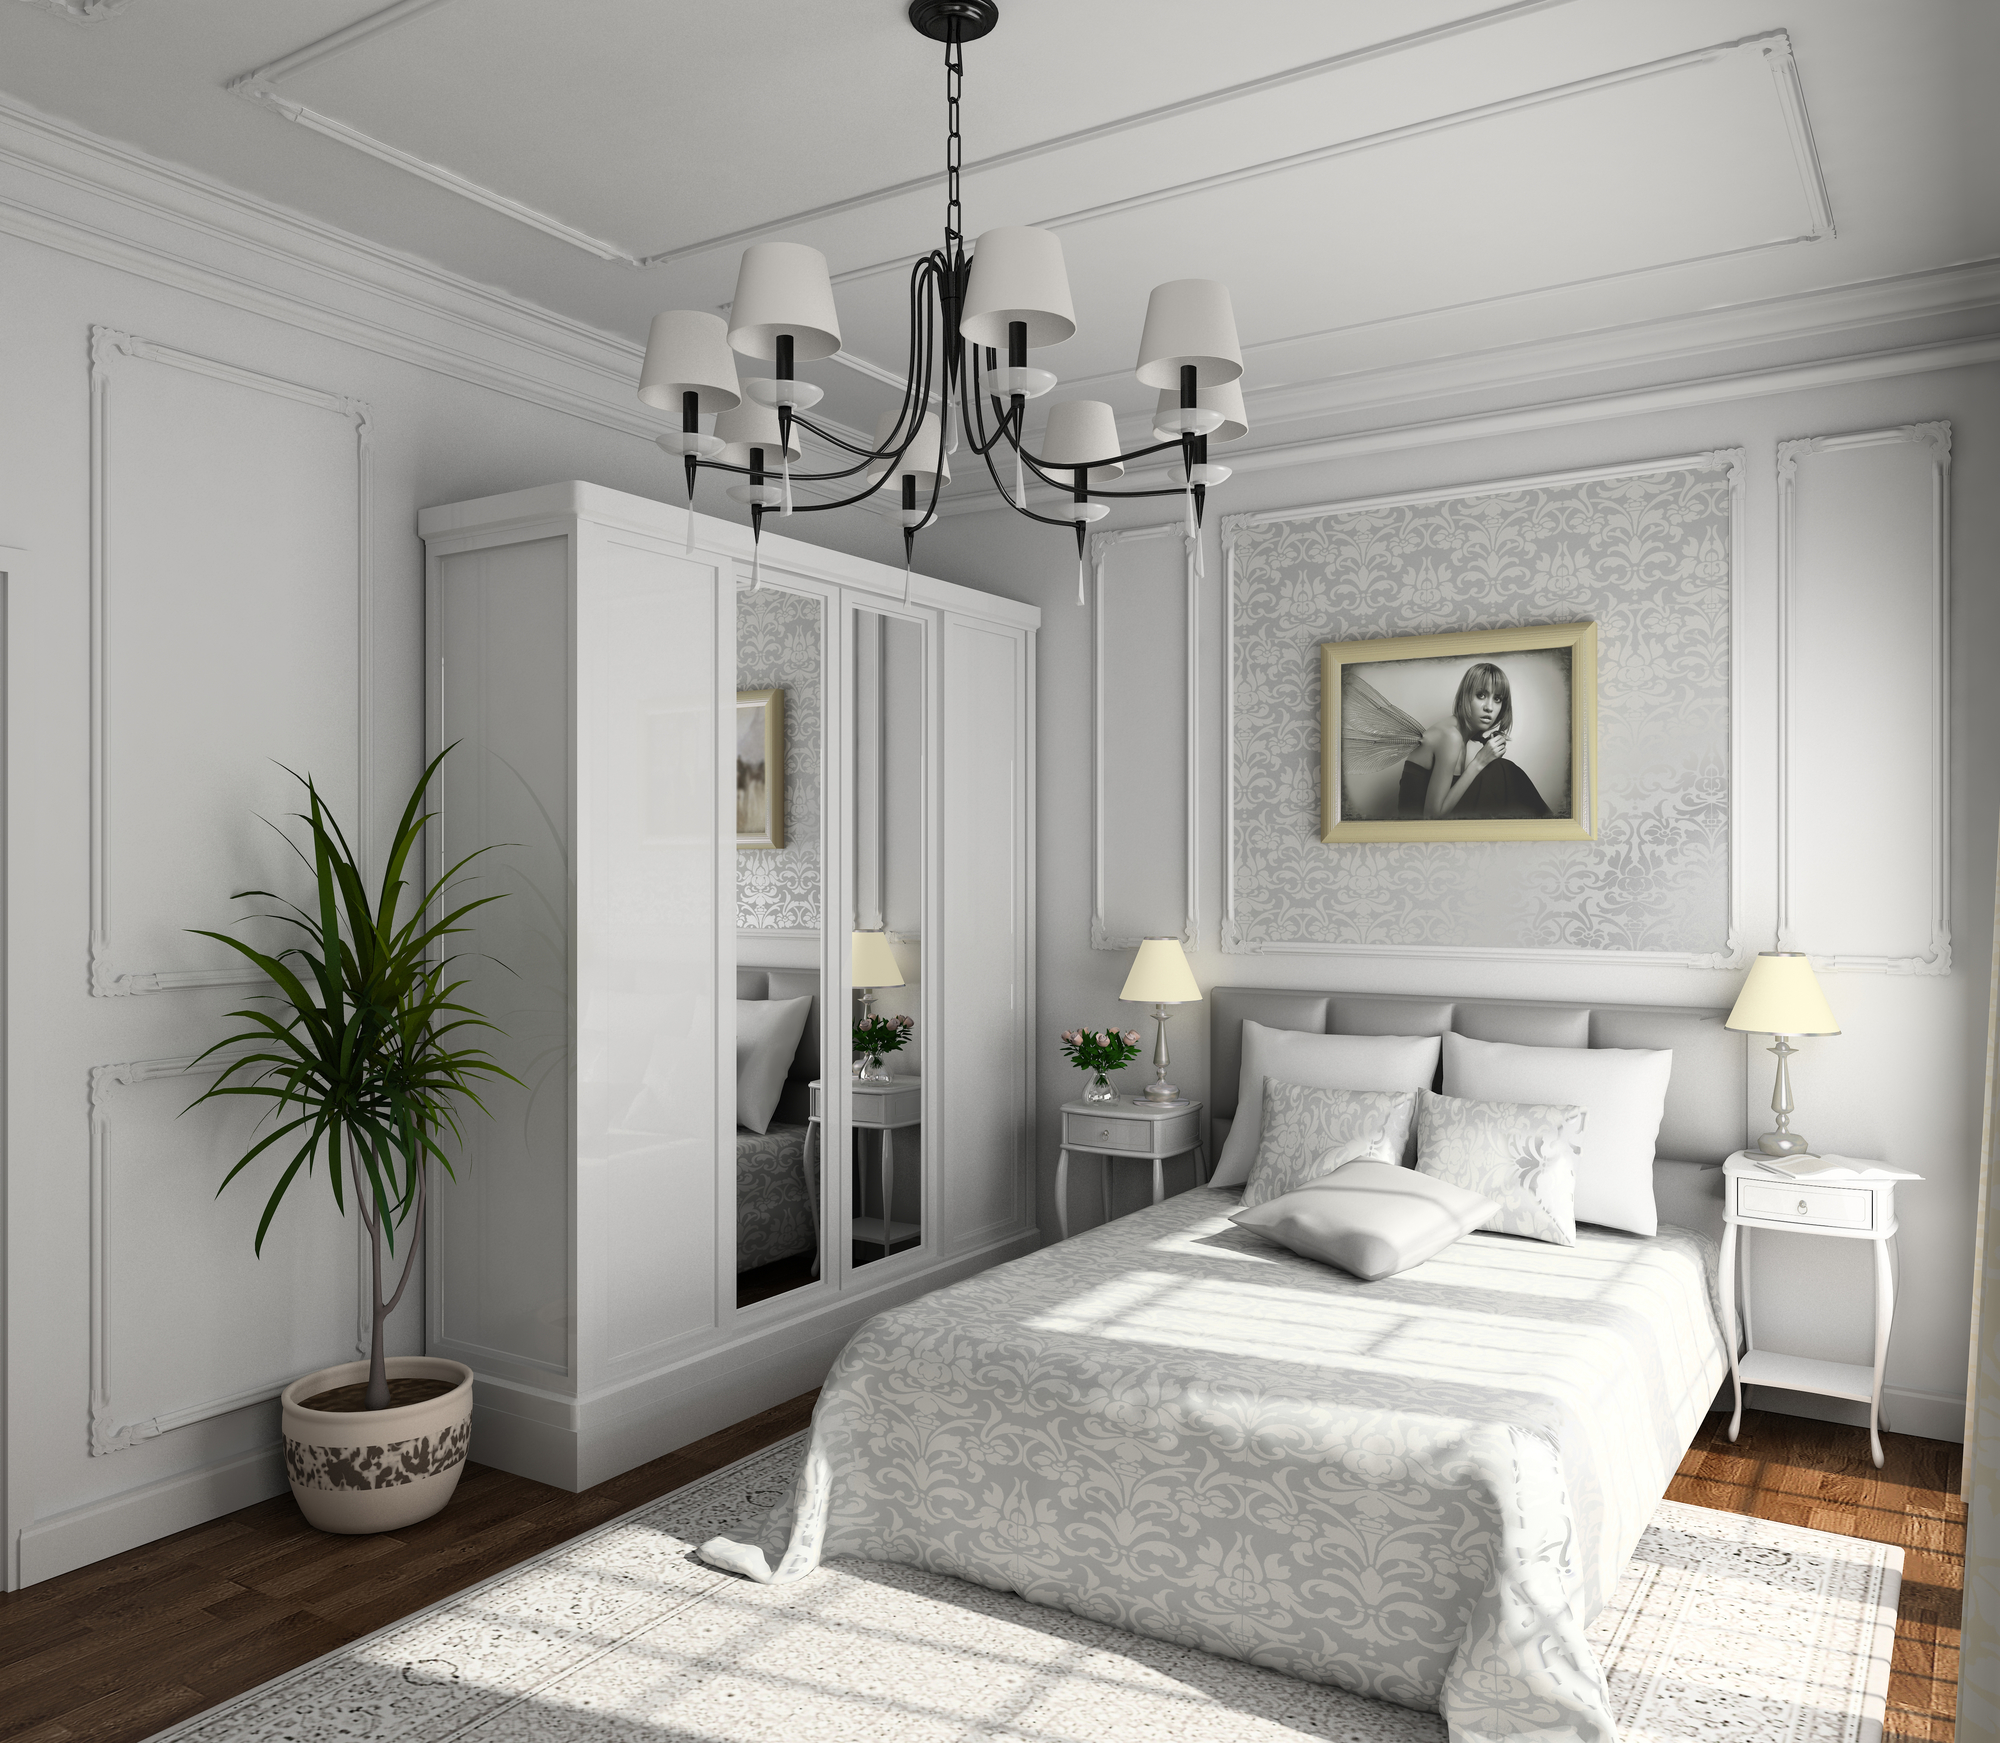 3 Factors To Consider Before Renting Bedroom Furniture Indy Furniture Rentals And Sales